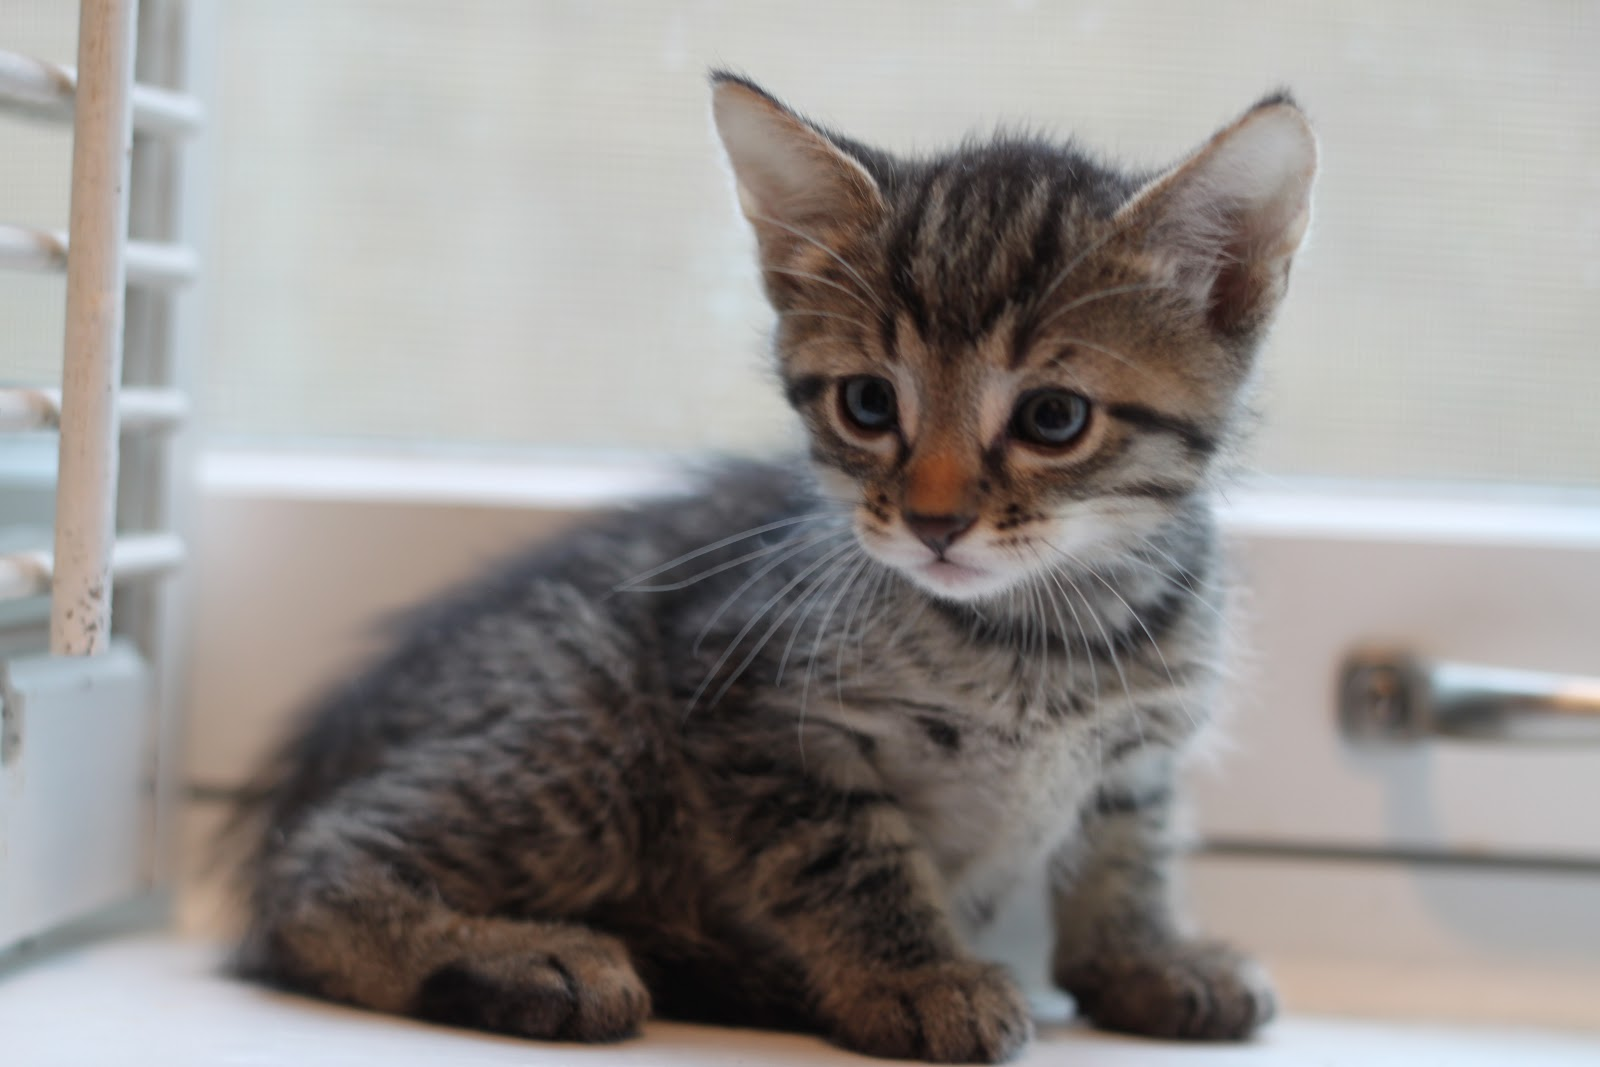 20 Best Of Baby Kittens for Adoption | Kittens cute wallpapers